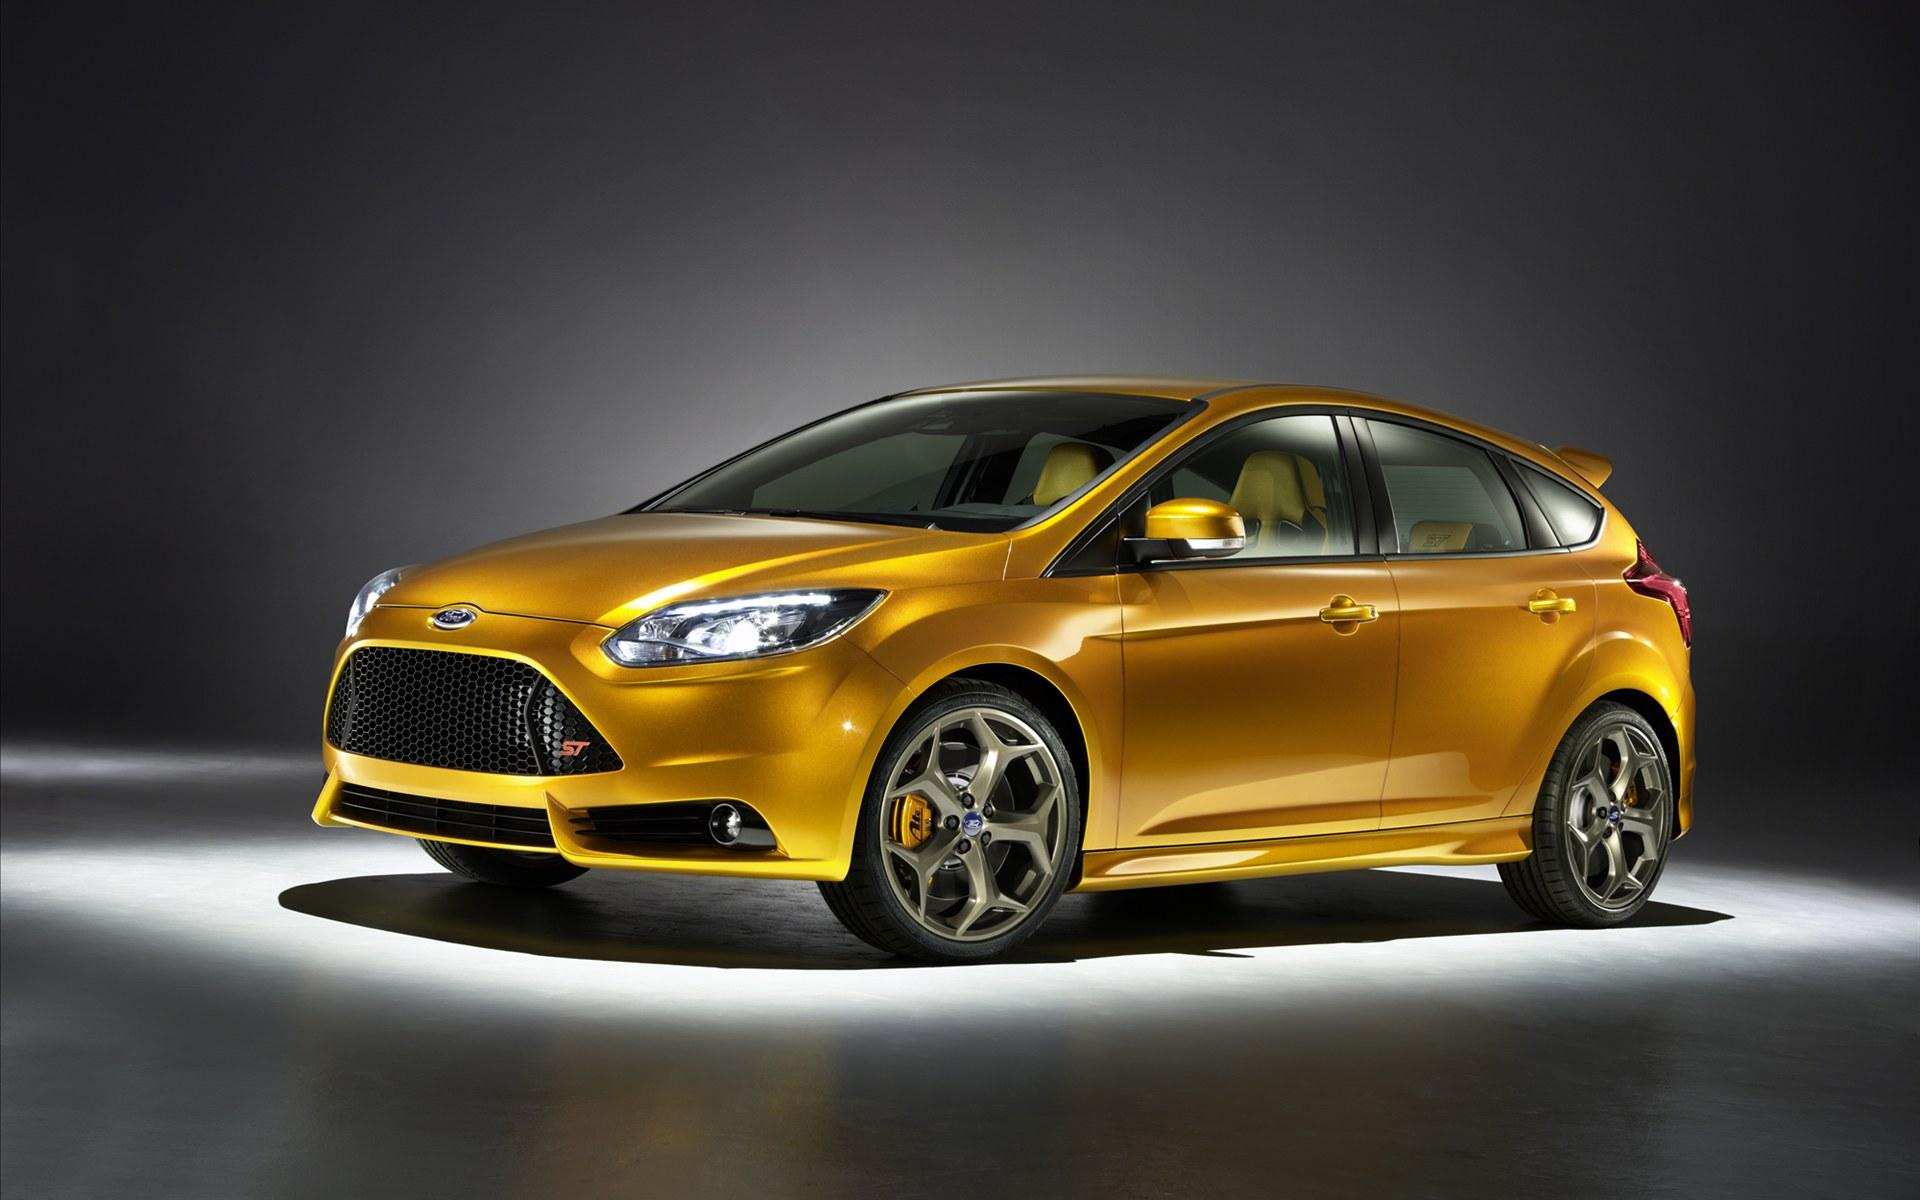 ���� Ford Focus ST 2012 1920x1200